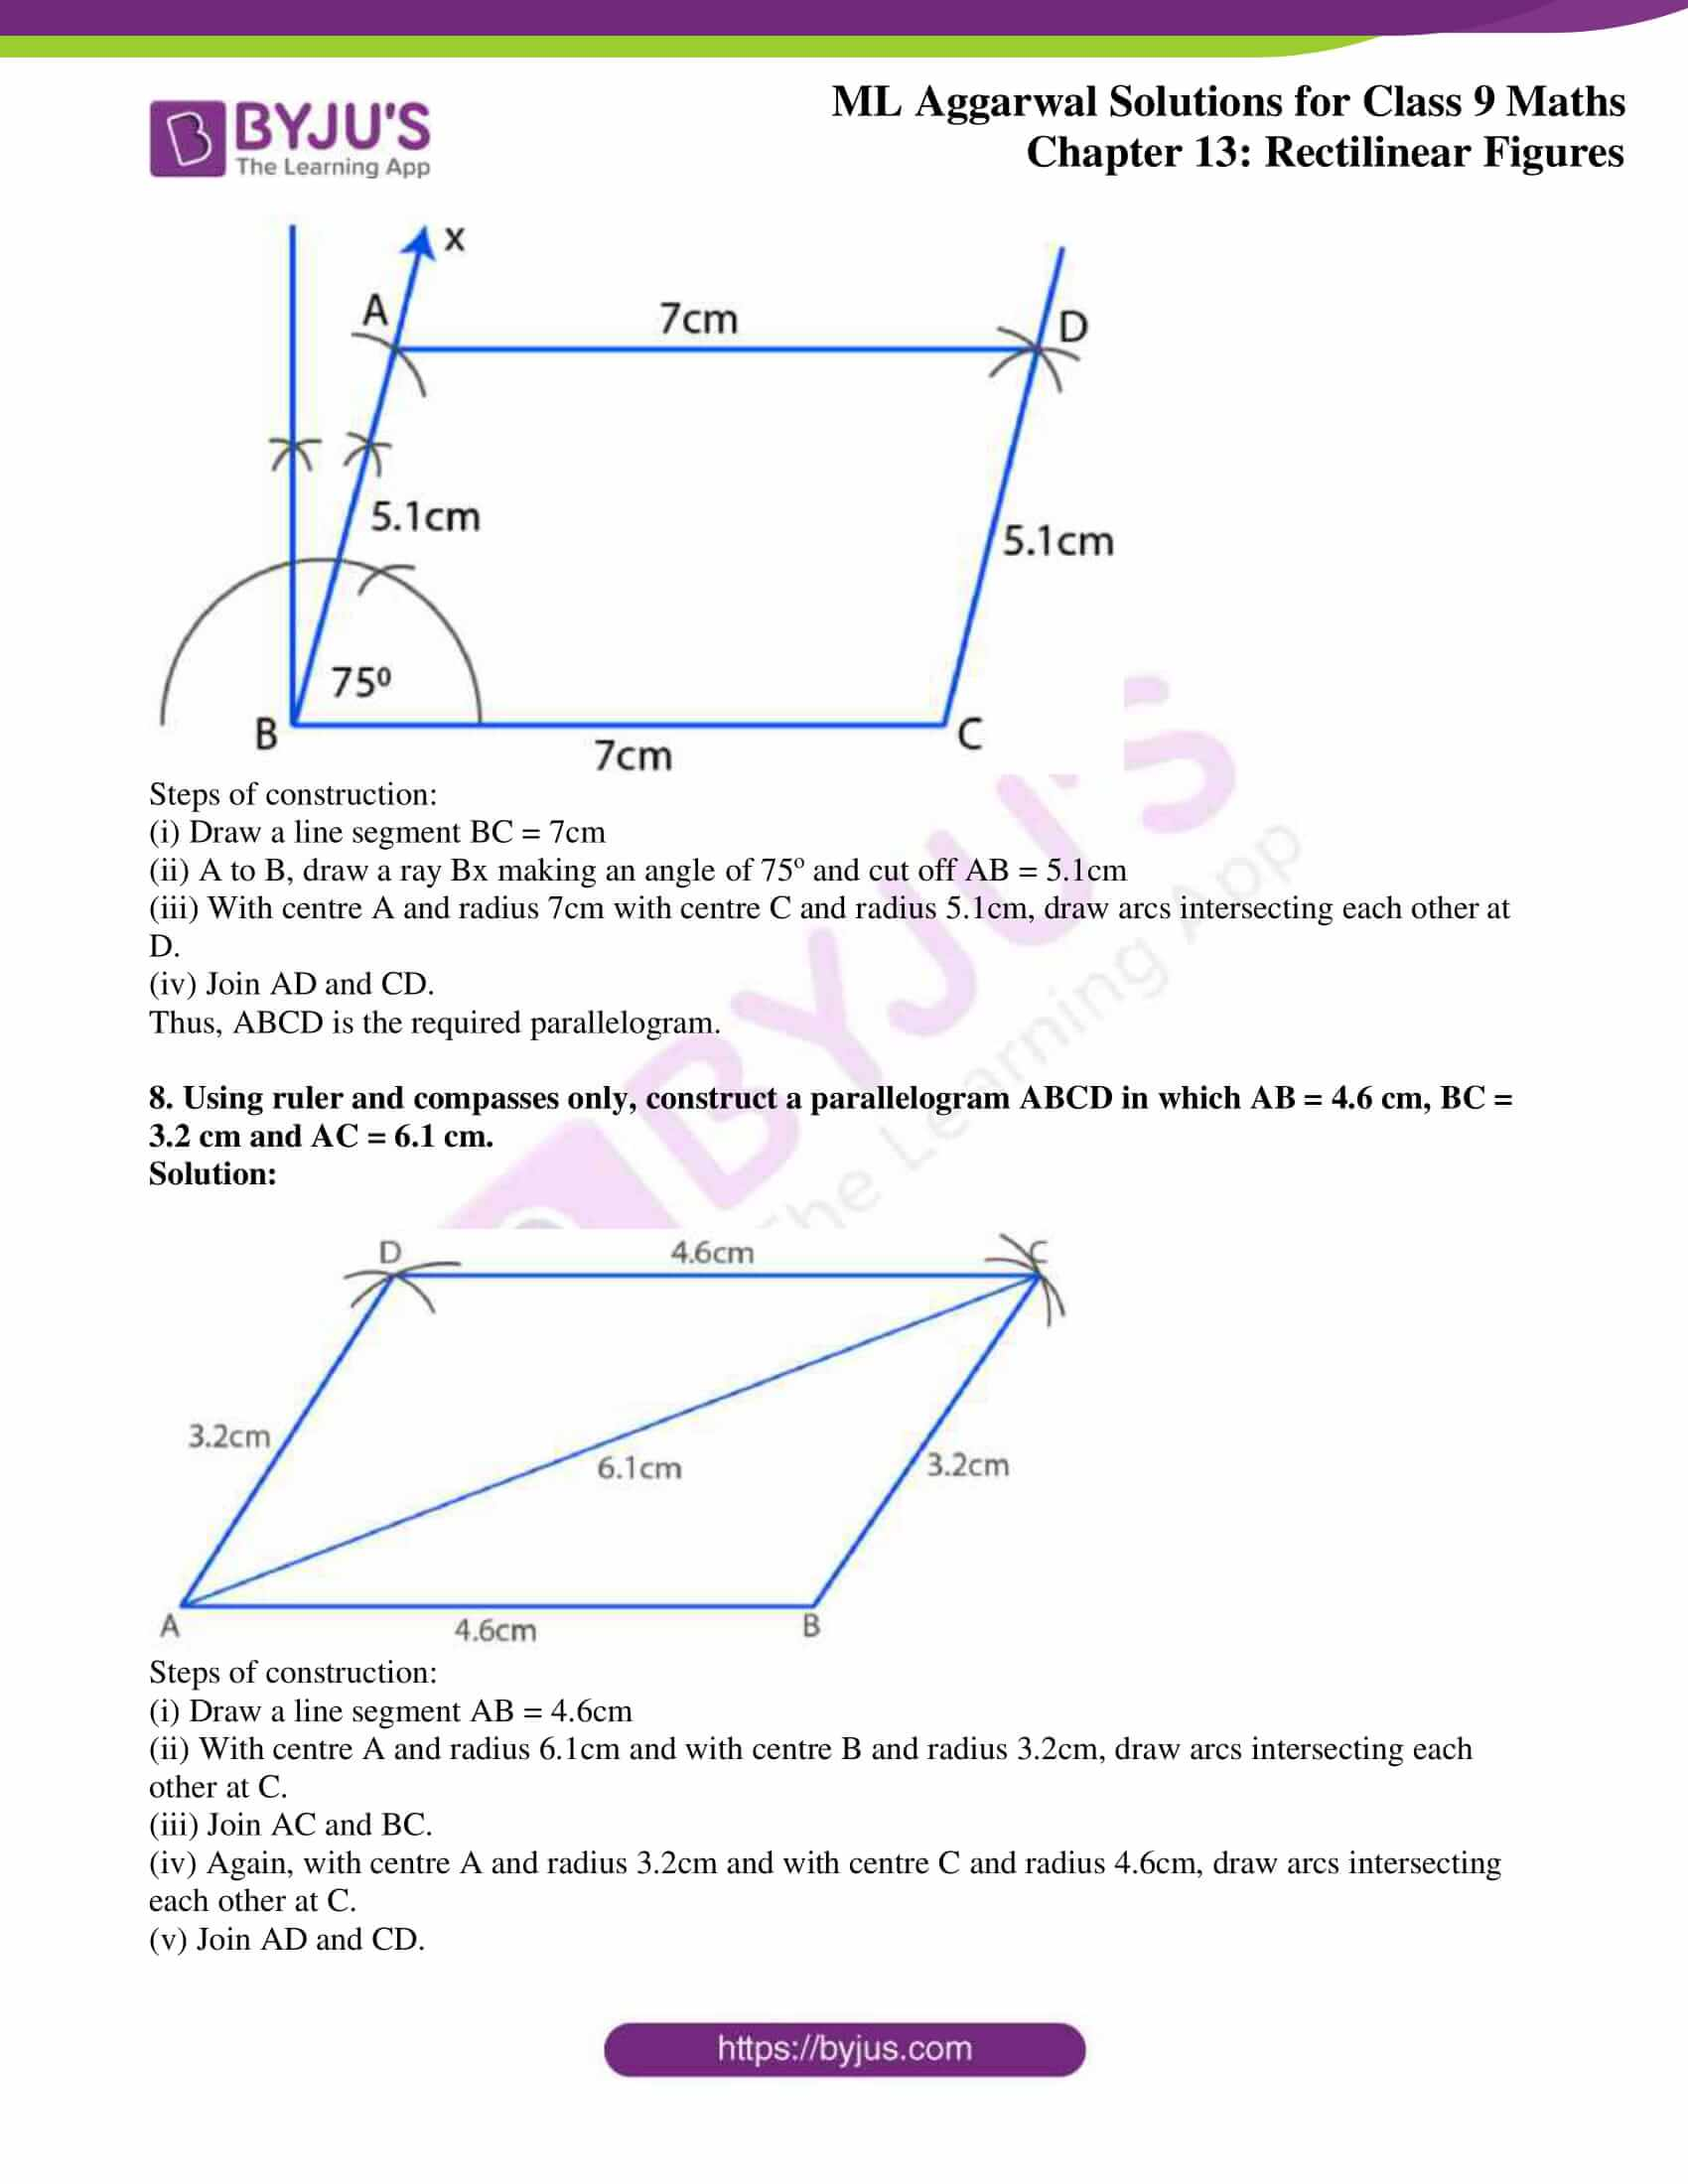 ml aggarwal solutions for class 9 maths chapter 13 28